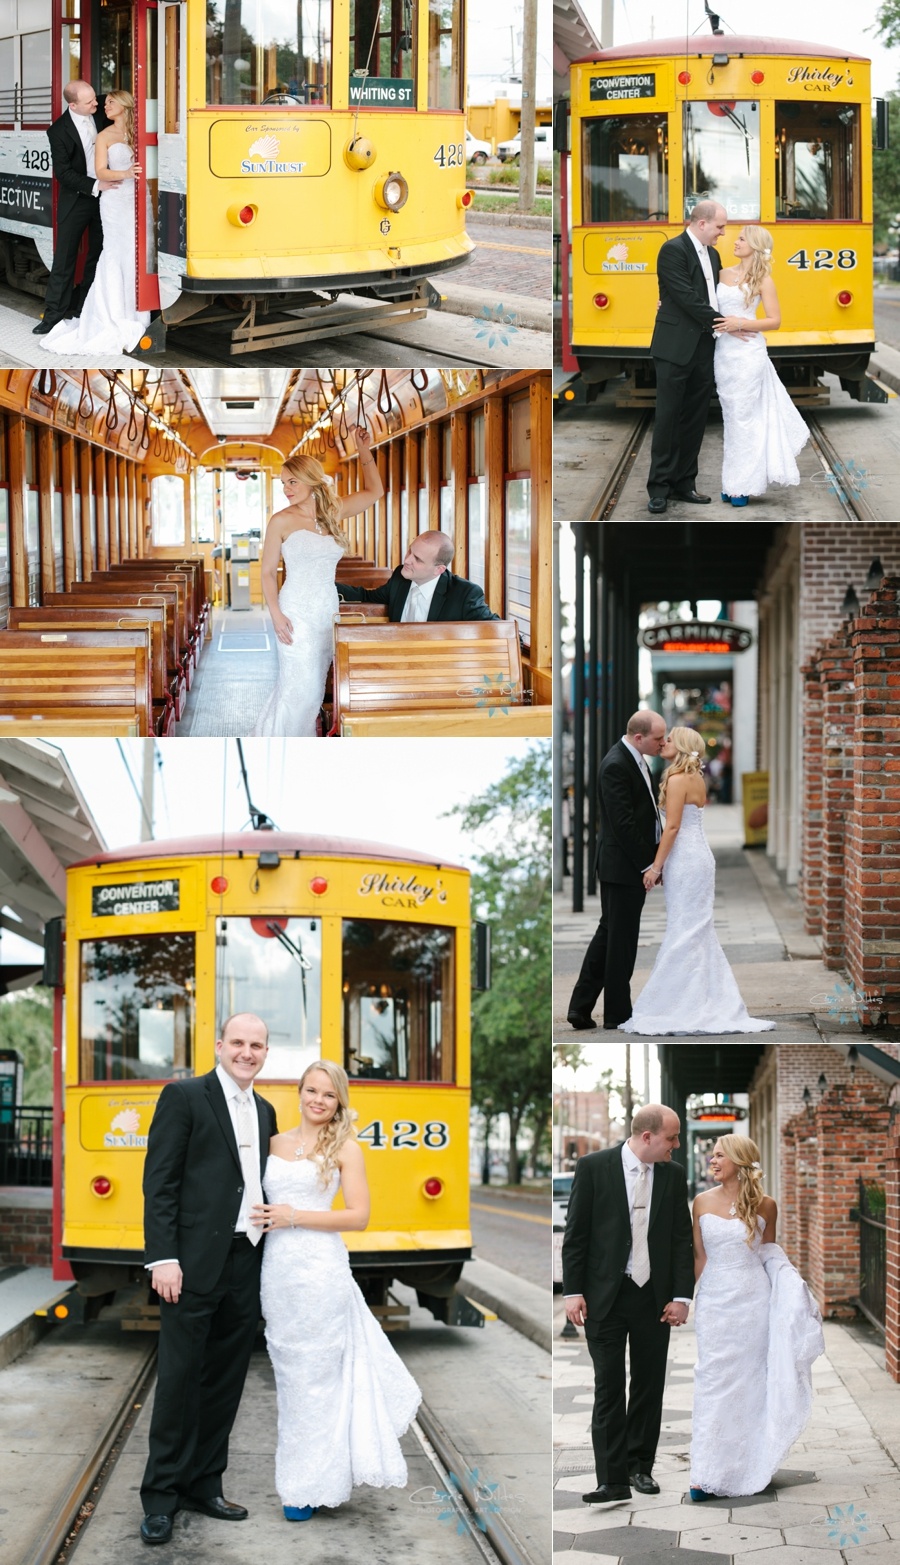 5_4_13 Ybor Wedding Photos_0001.jpg